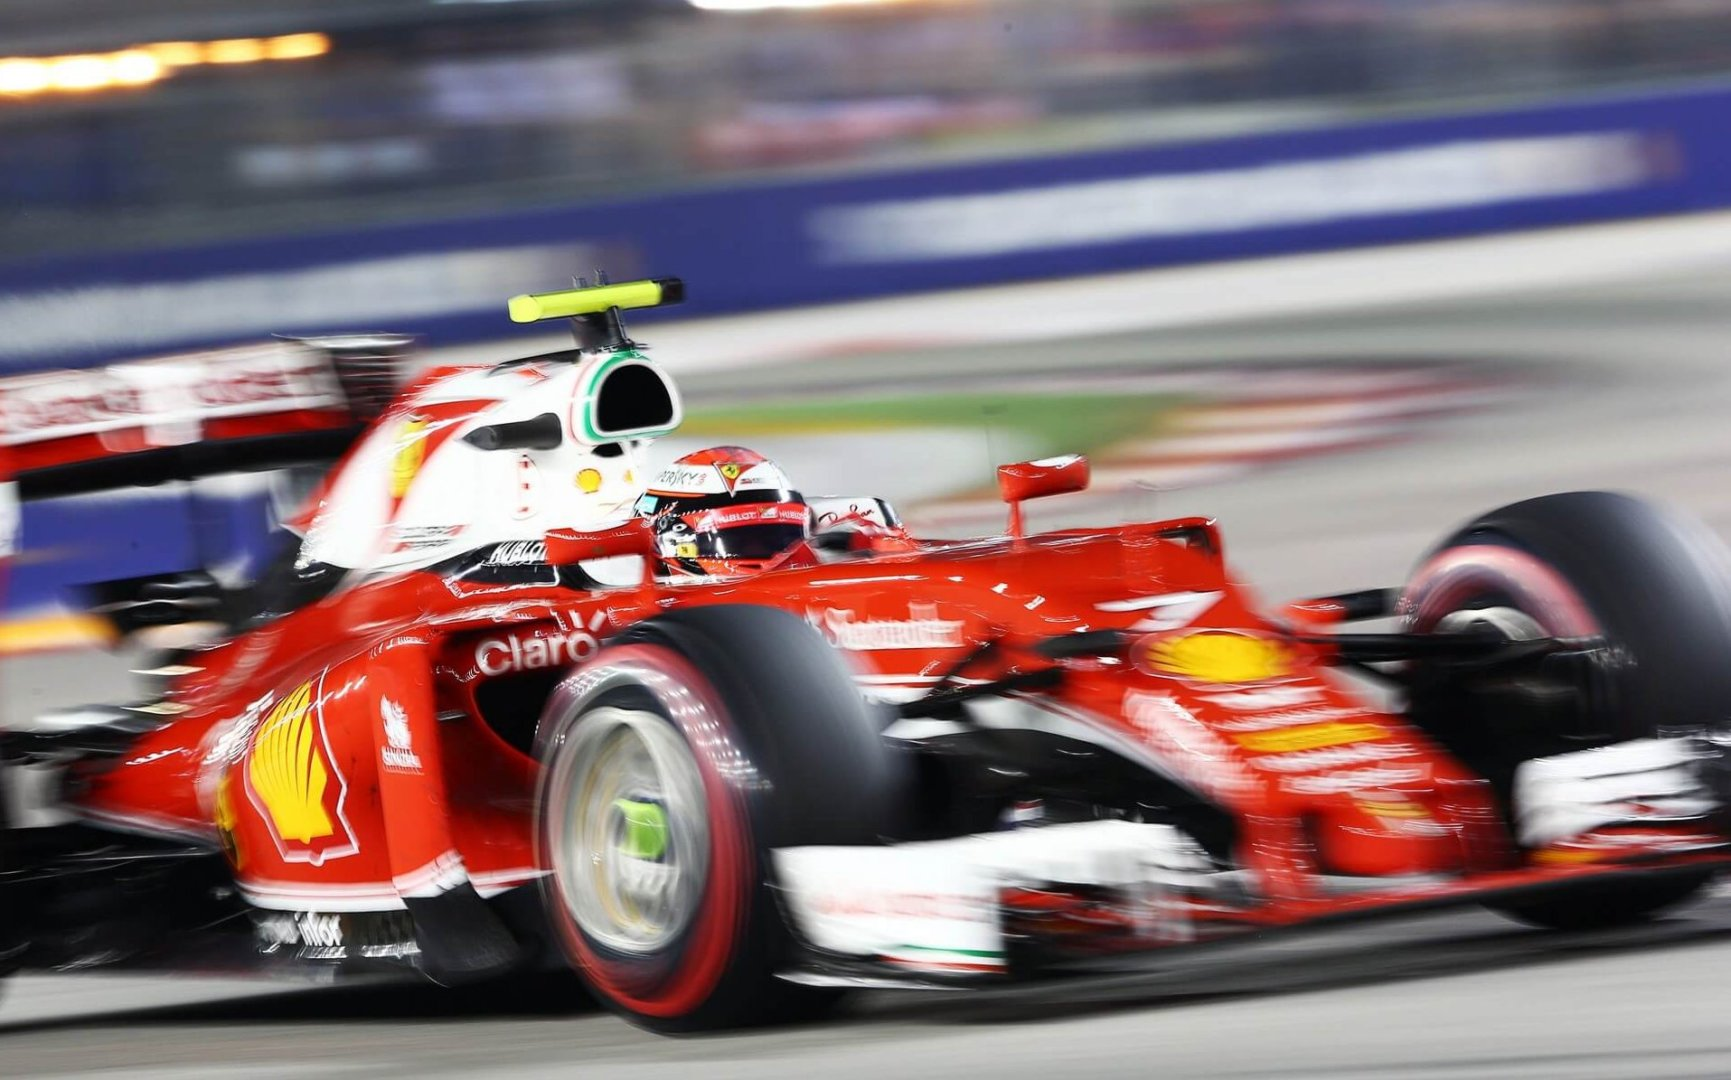 Motor Racing - Formula One World Championship - Singapore Grand Prix - Race Day - Singapore, Singapore